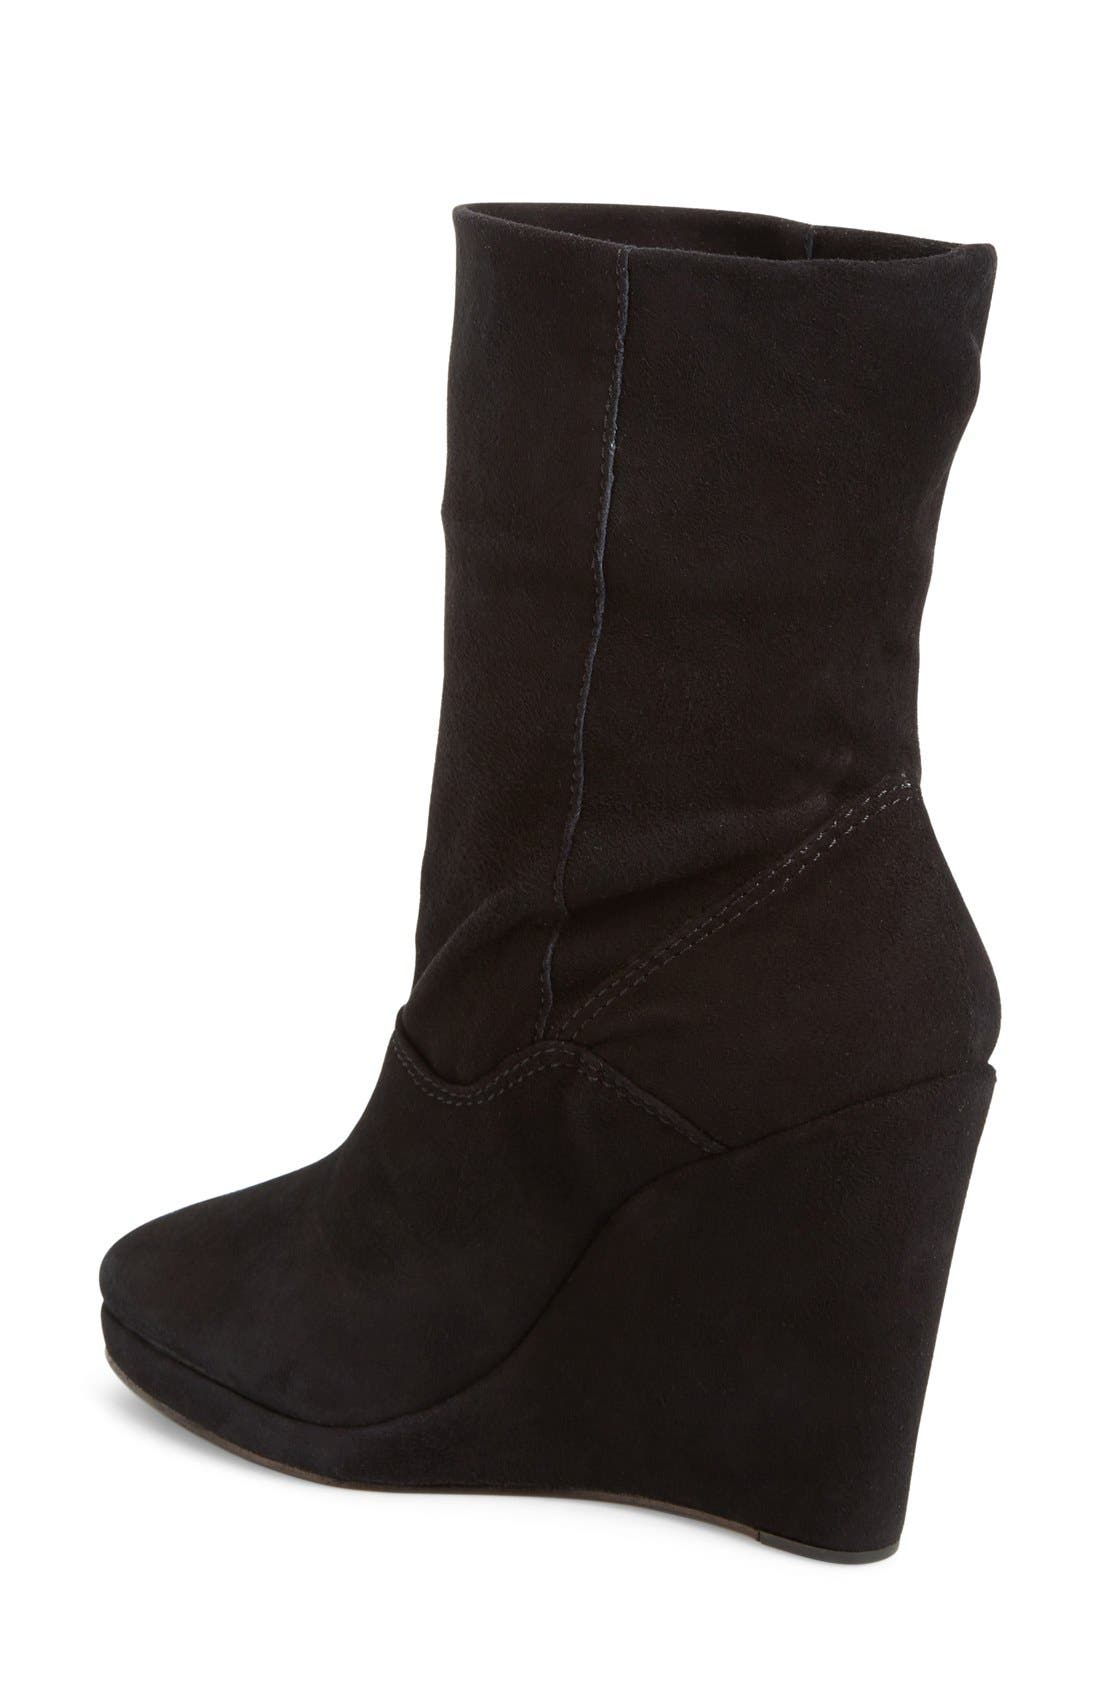 M4D3 Melanie Wedge Boot,                             Alternate thumbnail 3, color,                             001